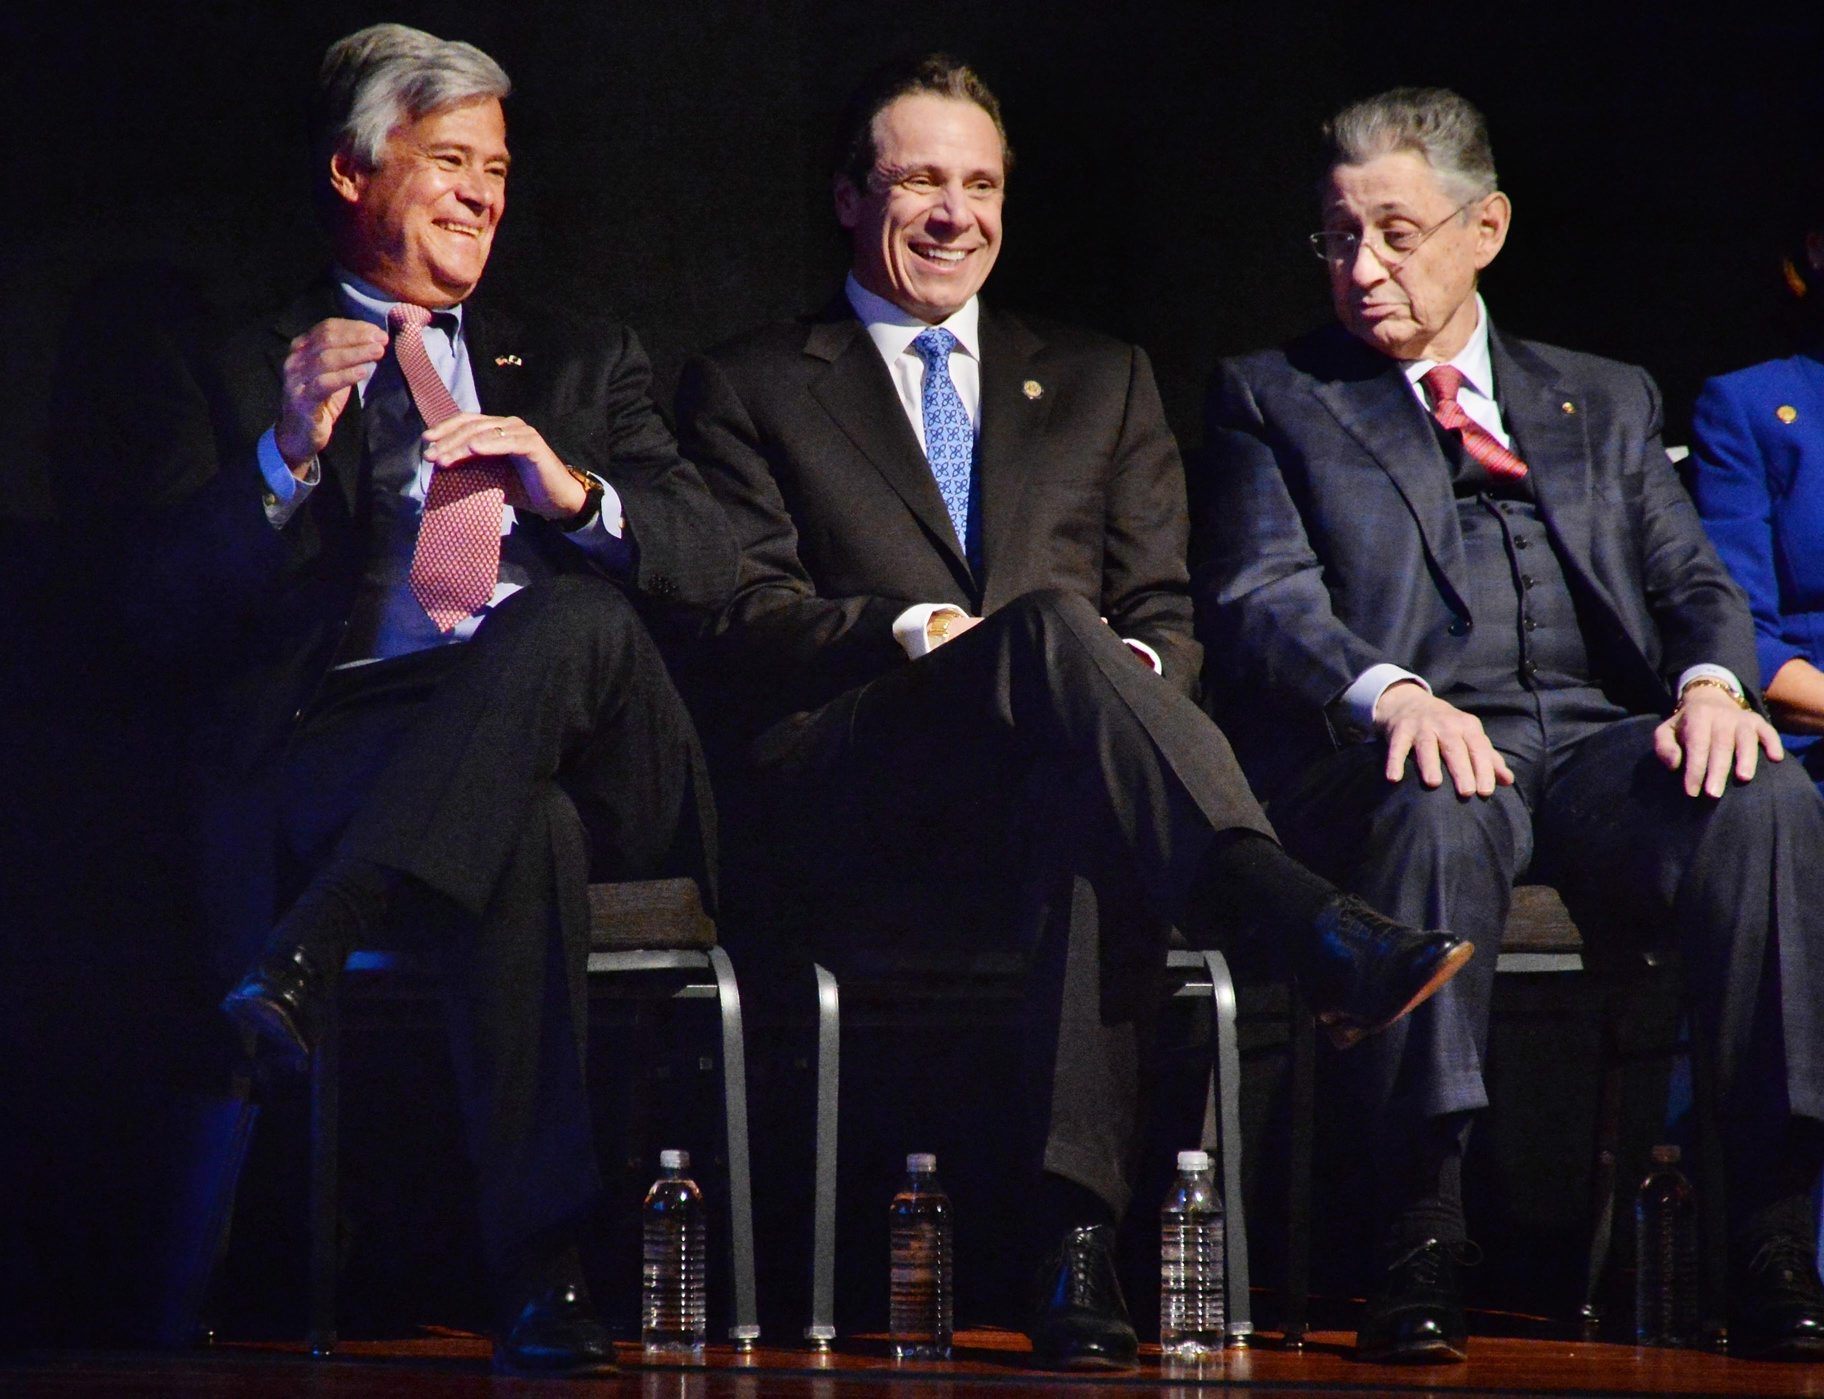 Senate Majority Leader Dean Skelos, left, Gov. Andrew M. Cuomo and Assembly Speaker Sheldon Silver share a light moment during the State of the State address Wednesday, one day before Silver was arrested.